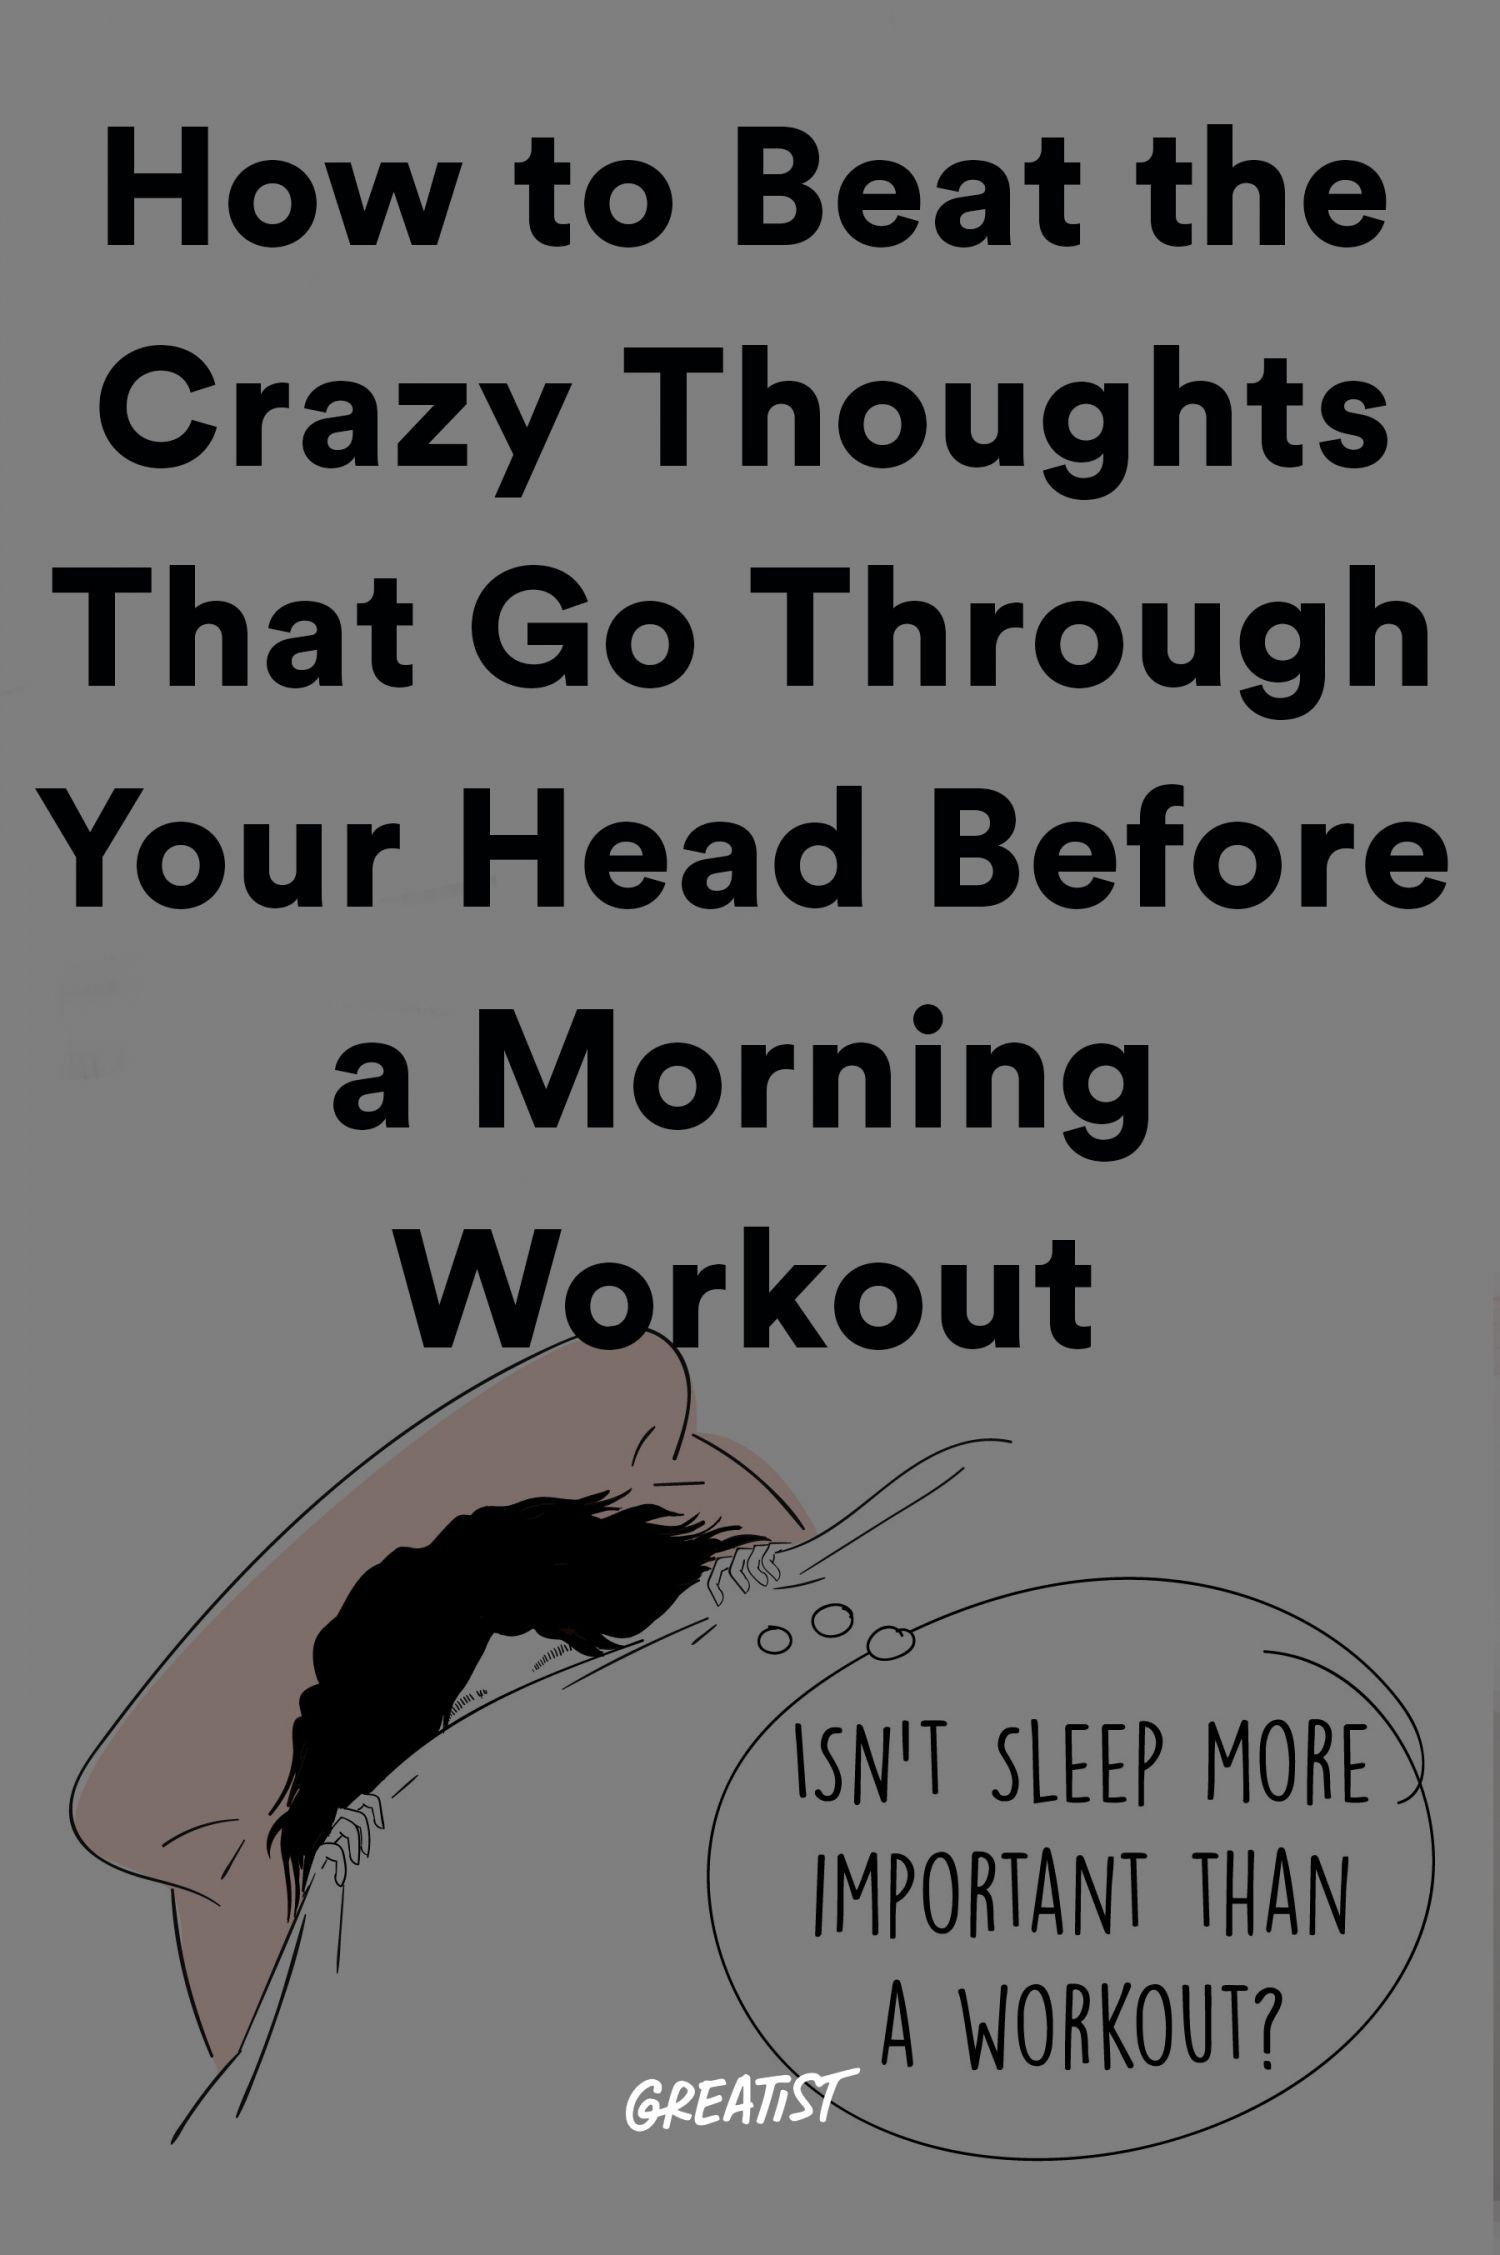 Morning Workout Thoughts and How to Beat Them